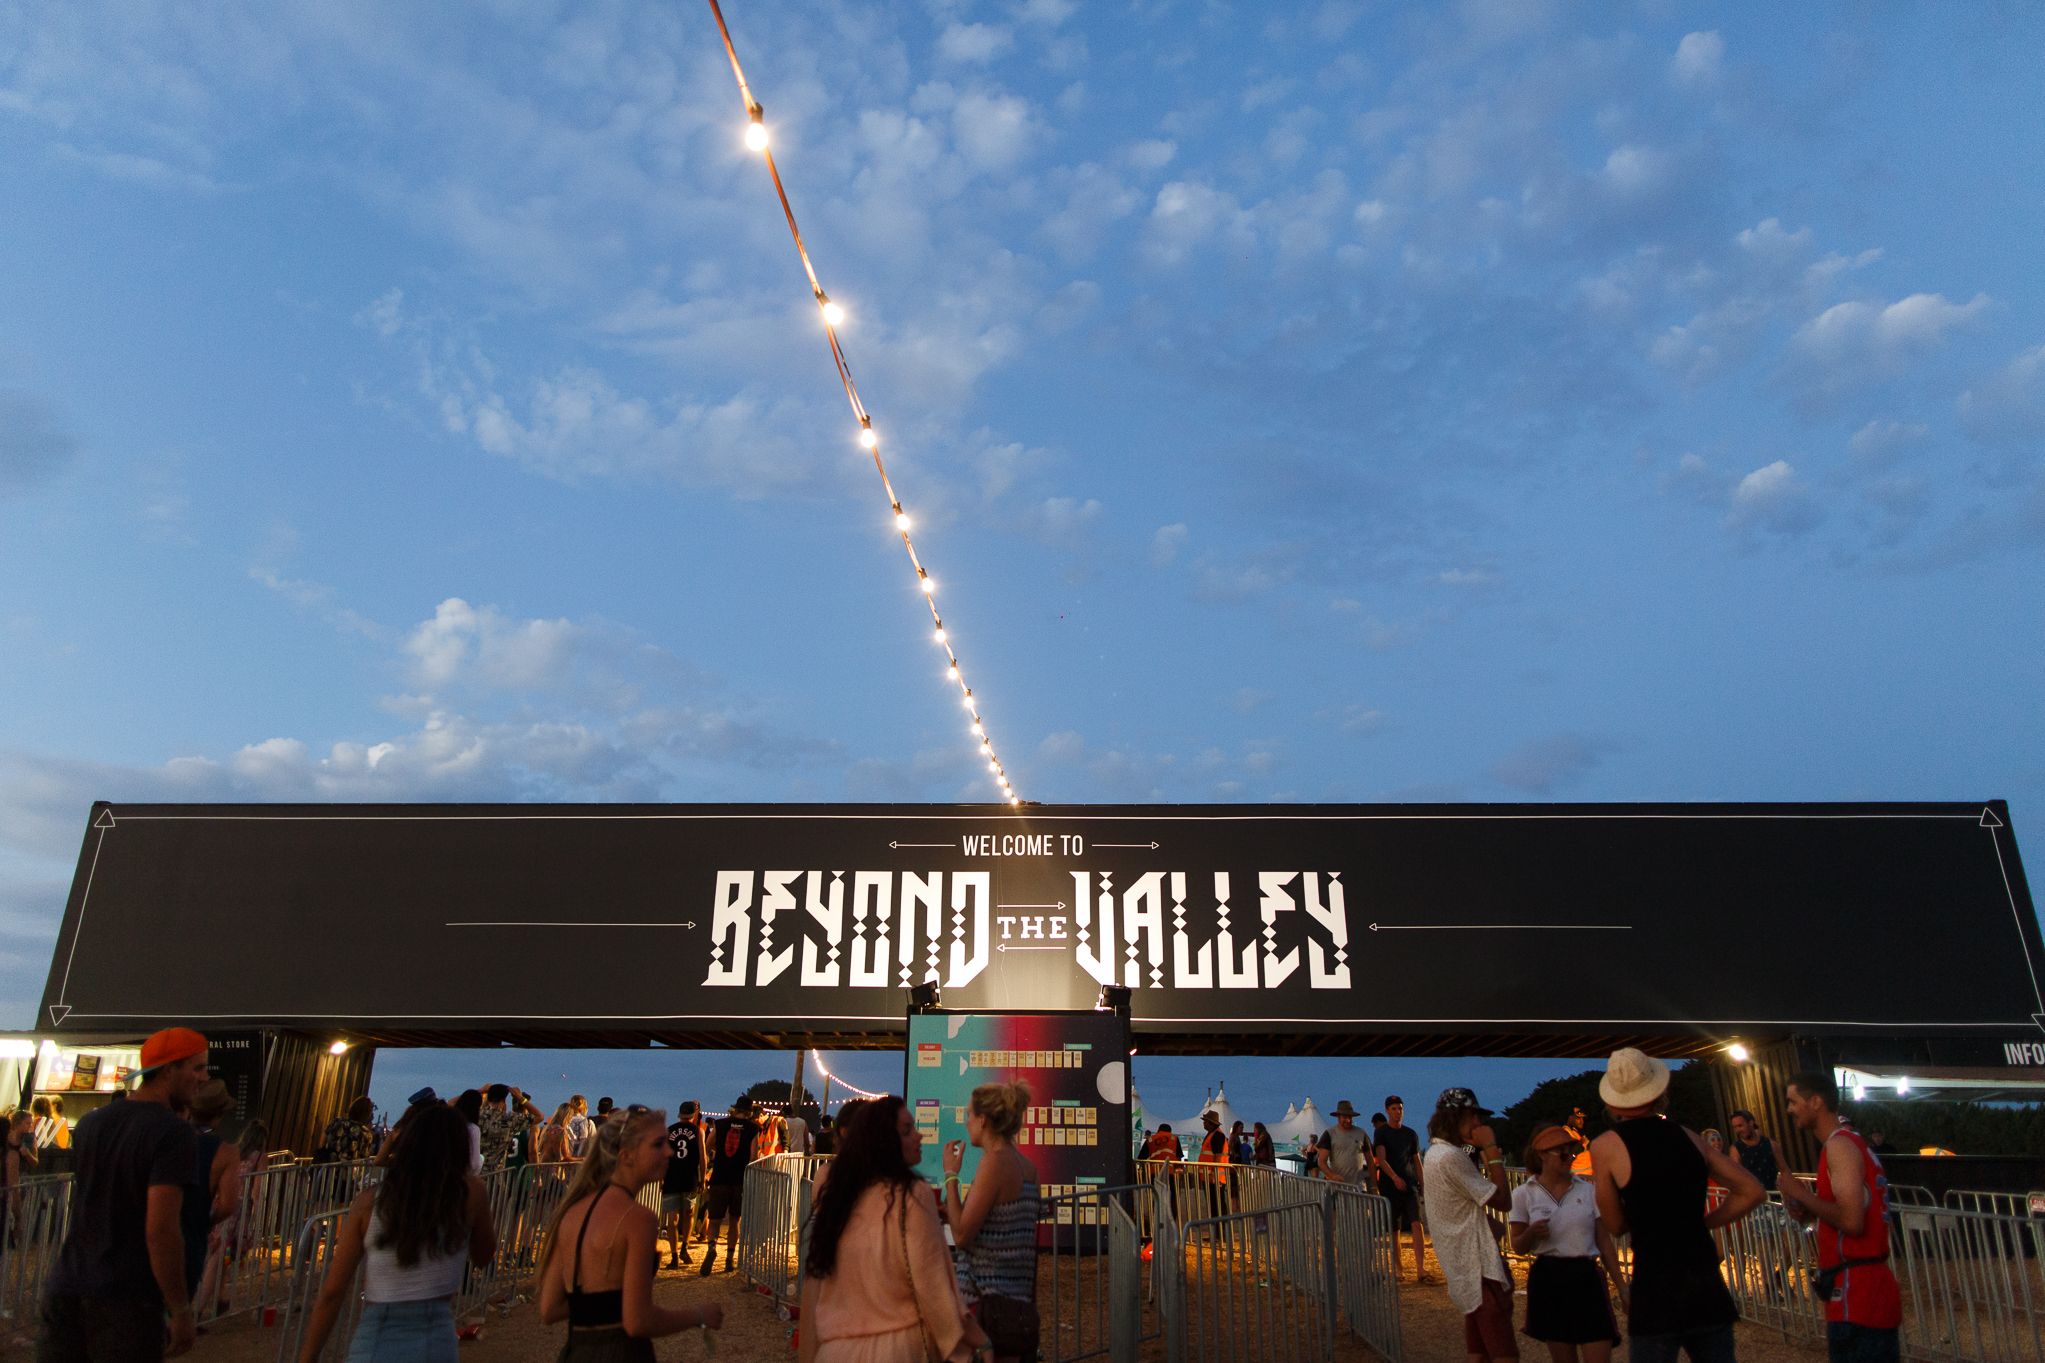 People standing below the entrance to Beyond the Valley Music Festival